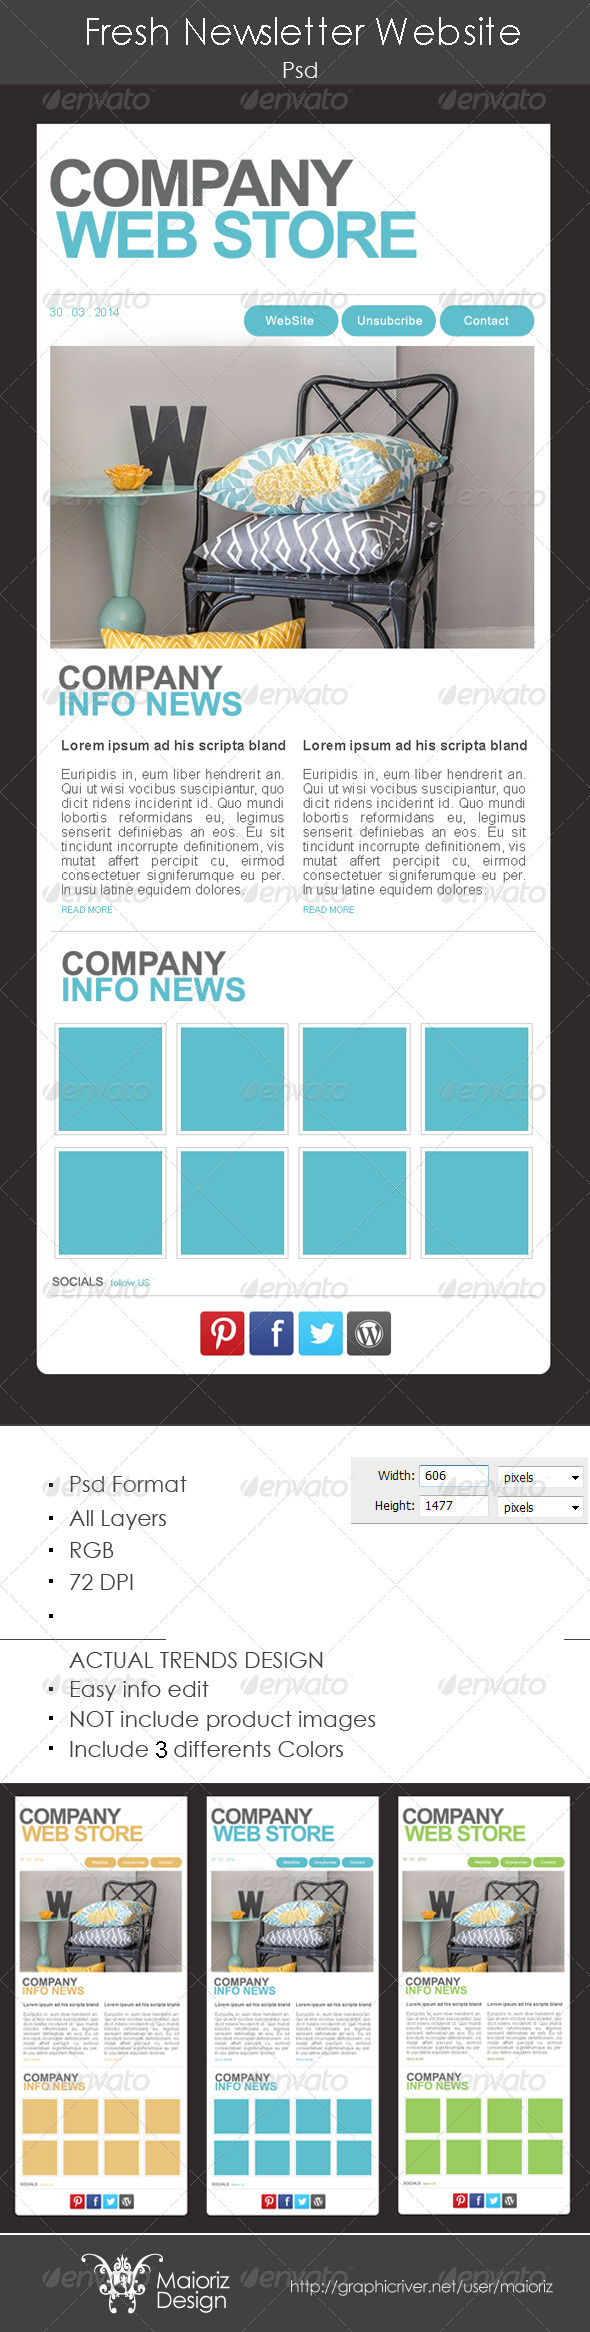 GraphicRiver Fresh Website Newsletter 4659689